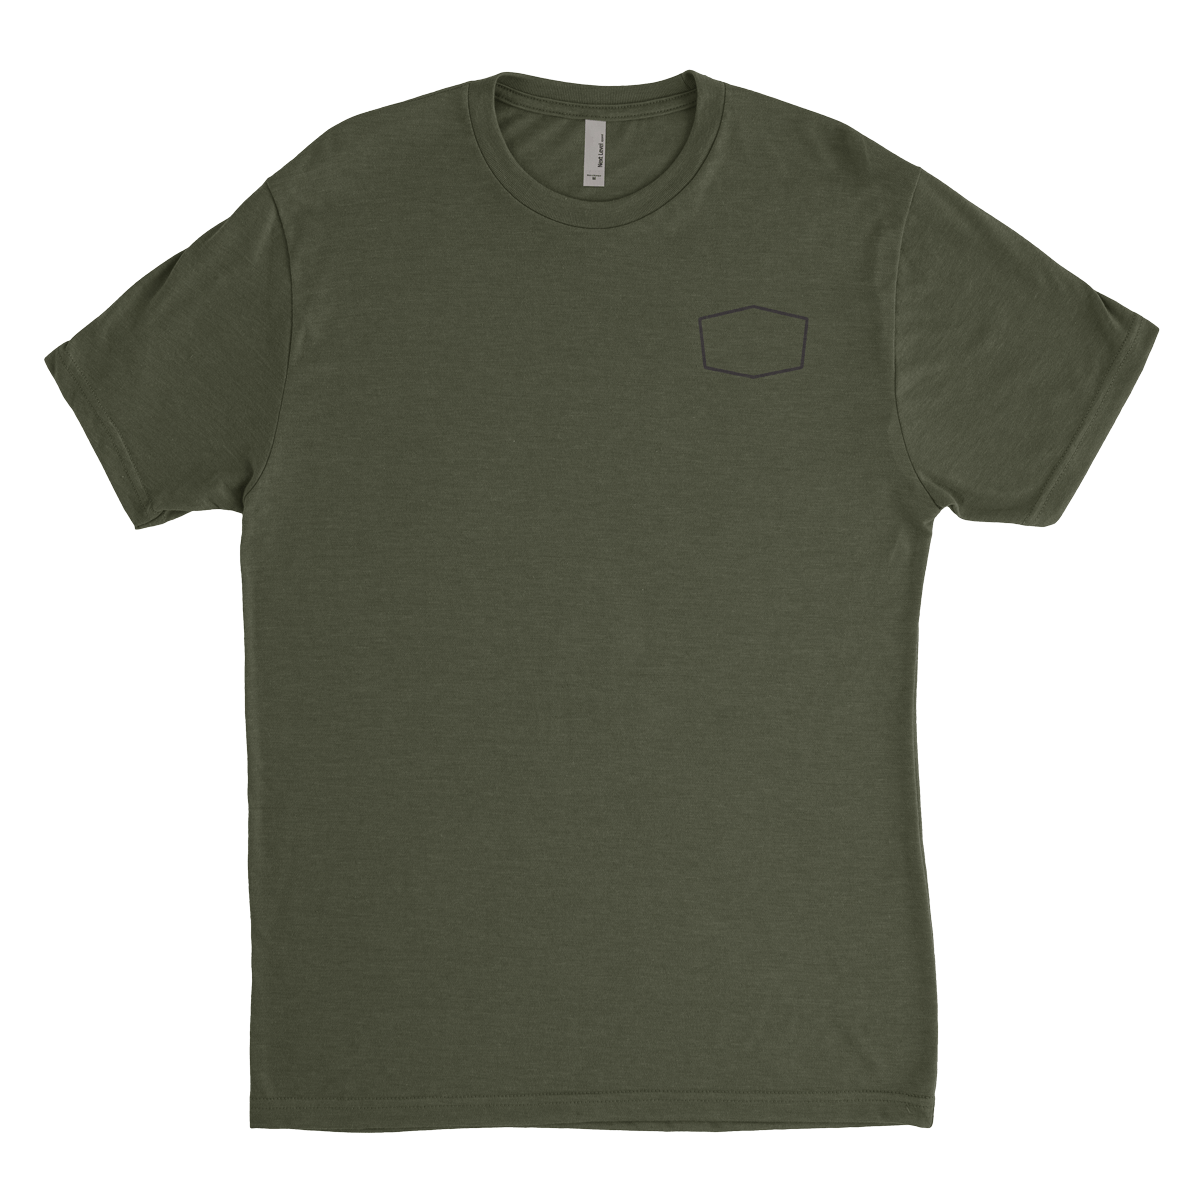 Mens Heathered Green Crew T-Shirt with small BUBS Naturals logo on the front